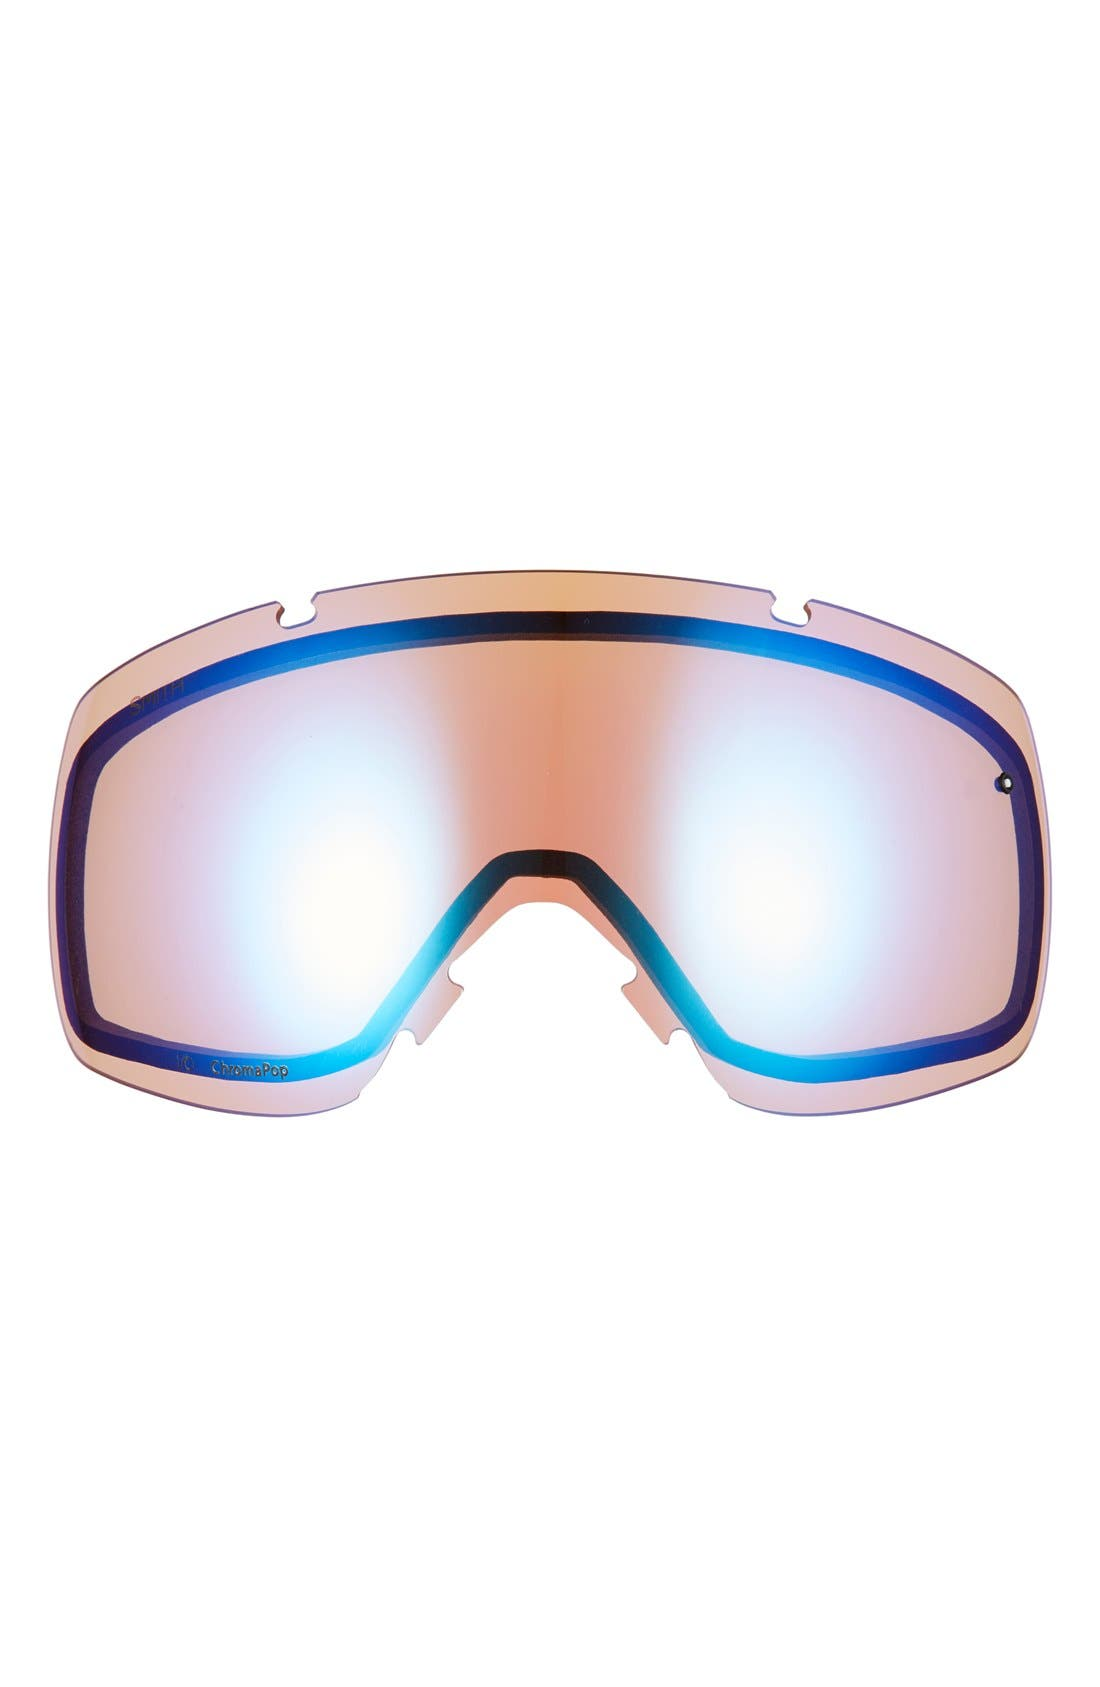 I/O 205mm Snow Goggles,                             Alternate thumbnail 2, color,                             001